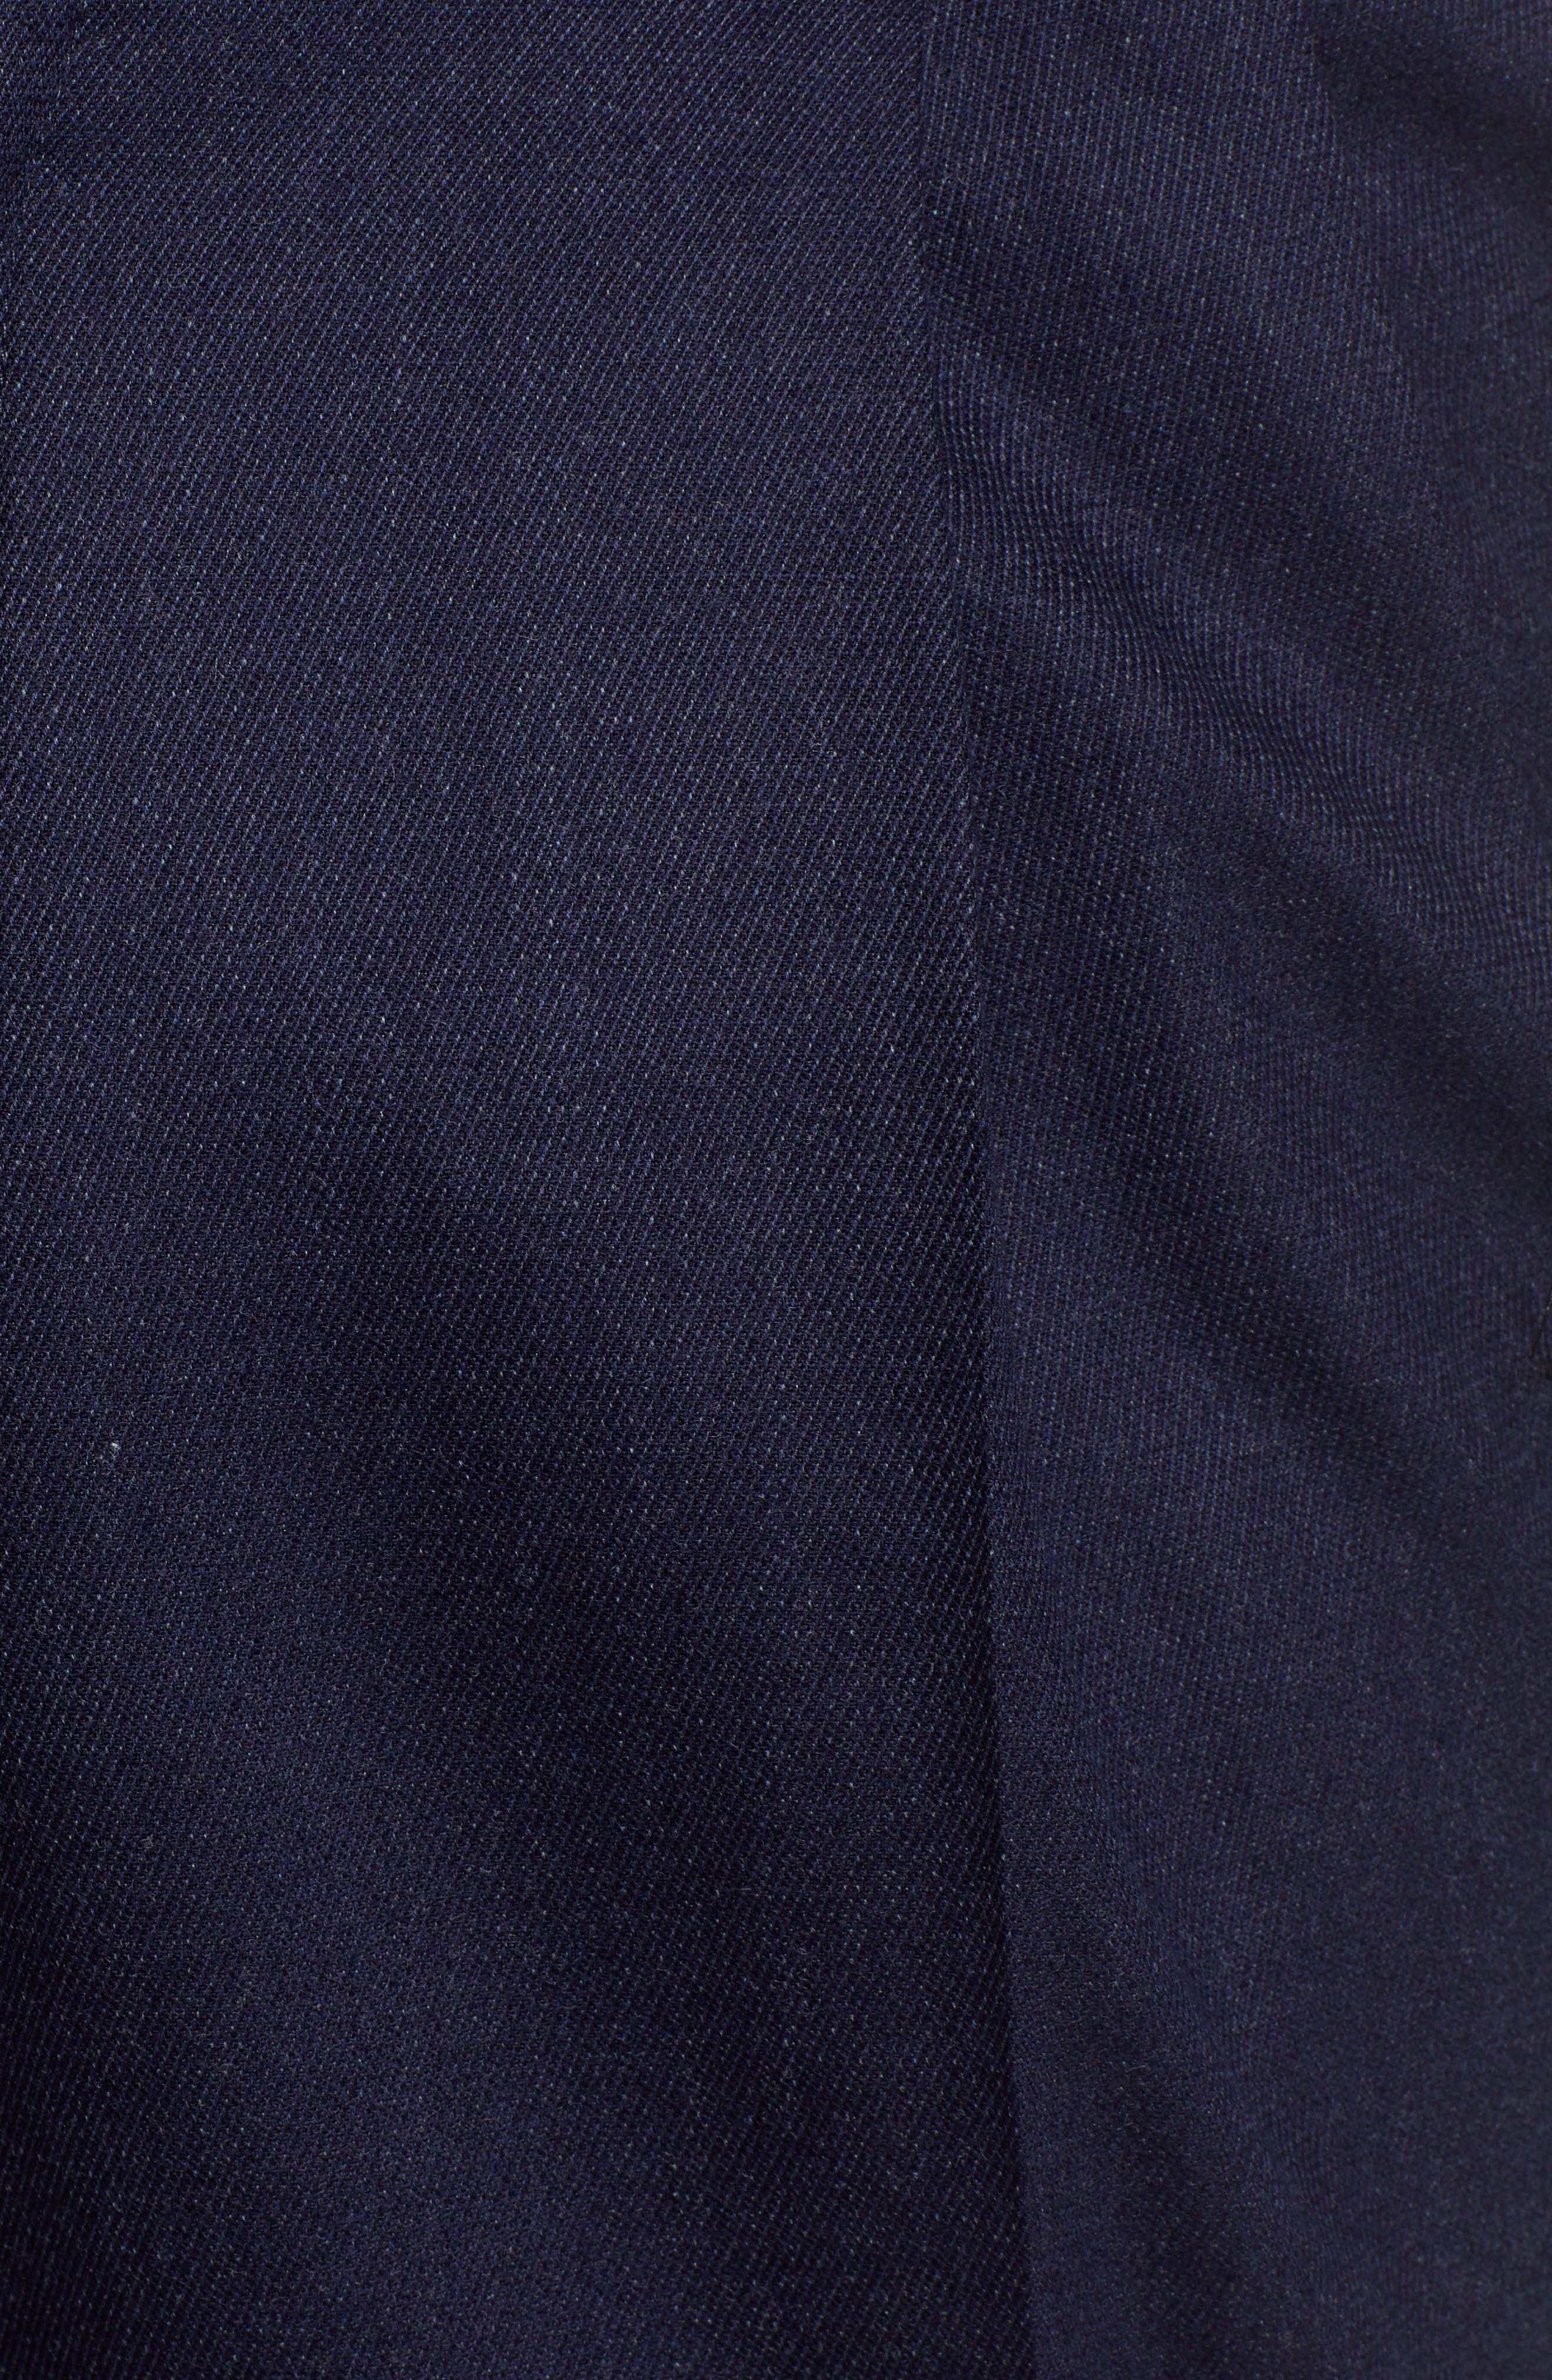 Manufacturing Pleated Stretch Solid Wool & Cotton Trousers,                             Alternate thumbnail 5, color,                             BLUE